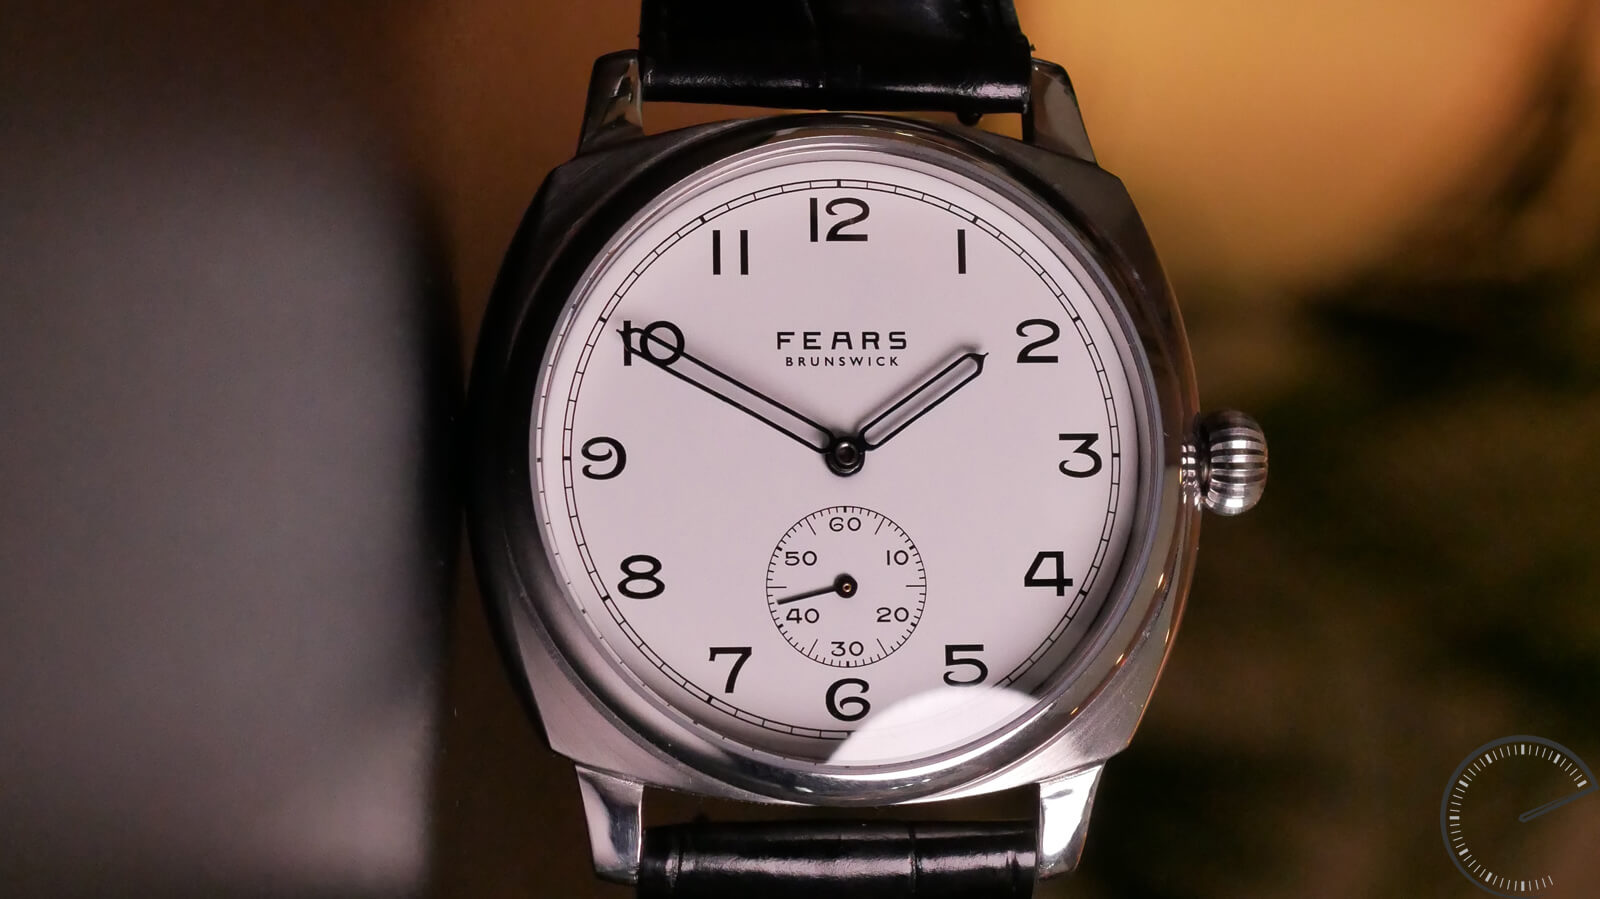 Fears Brunswick - British watch with small seconds and cold resin enamel dial